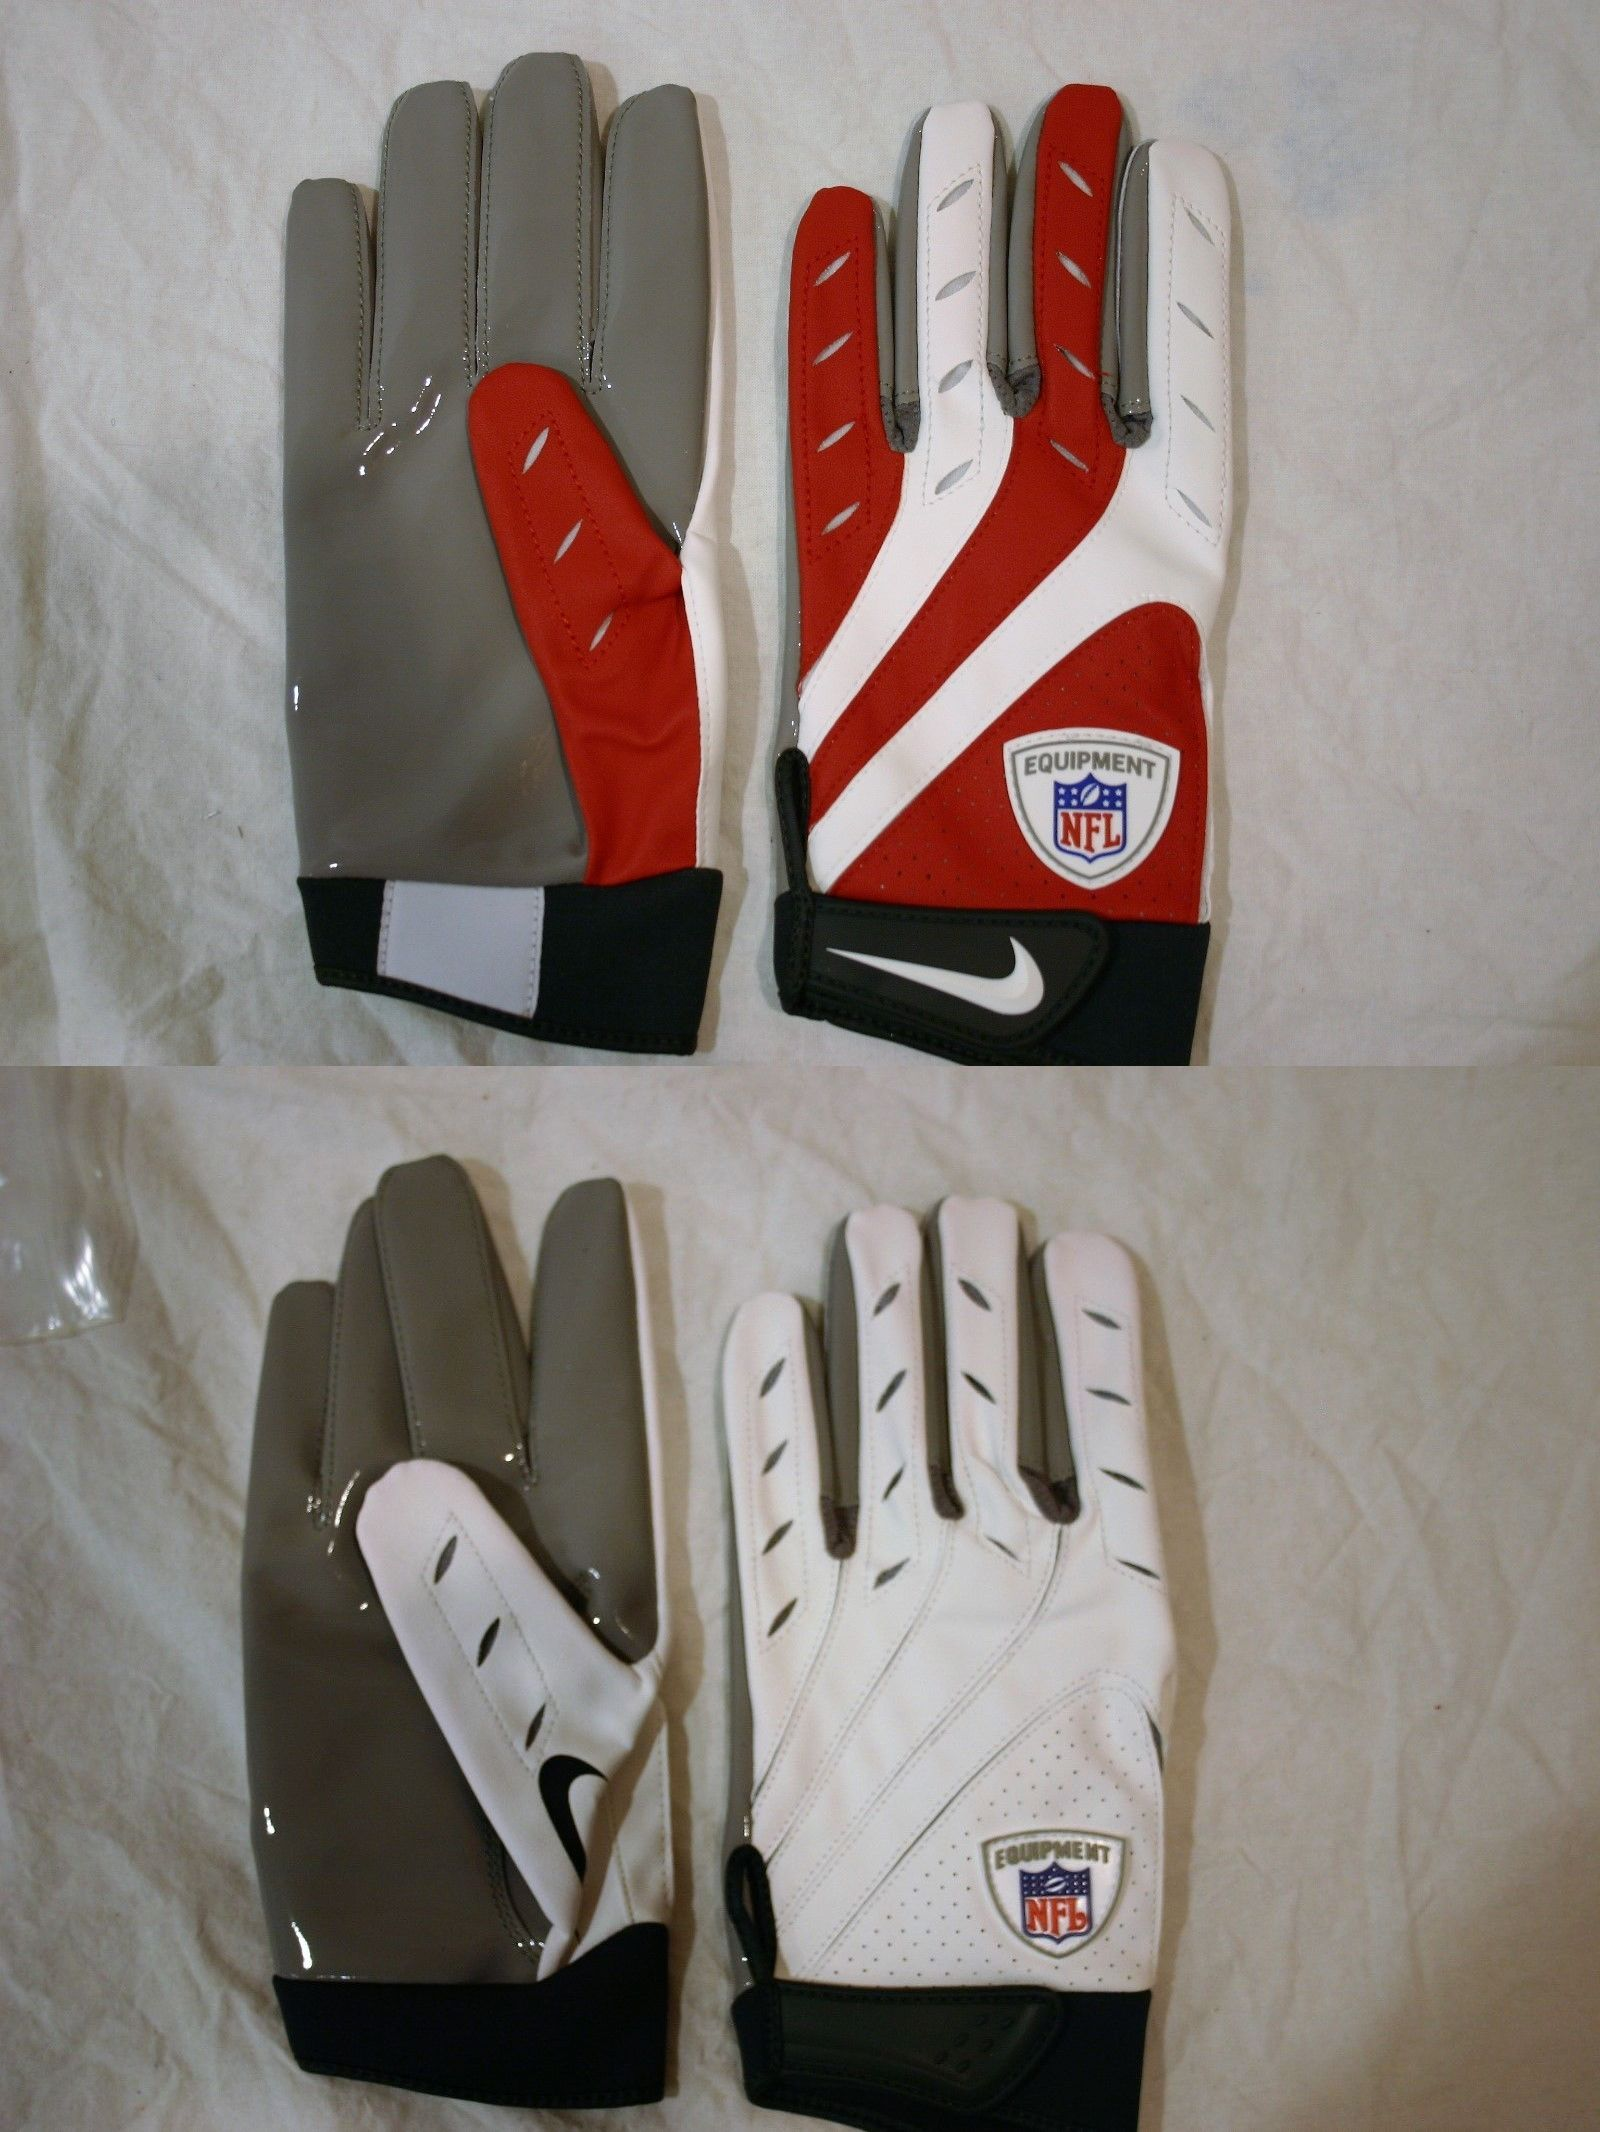 Clothing Shoes and Accessories 159113  Nike Football Gloves - Pro Elite  Remix Magnigrip - Various Colors Sizes -  BUY IT NOW ONLY   24.99 on  eBay   clothing ... 8002b3b661